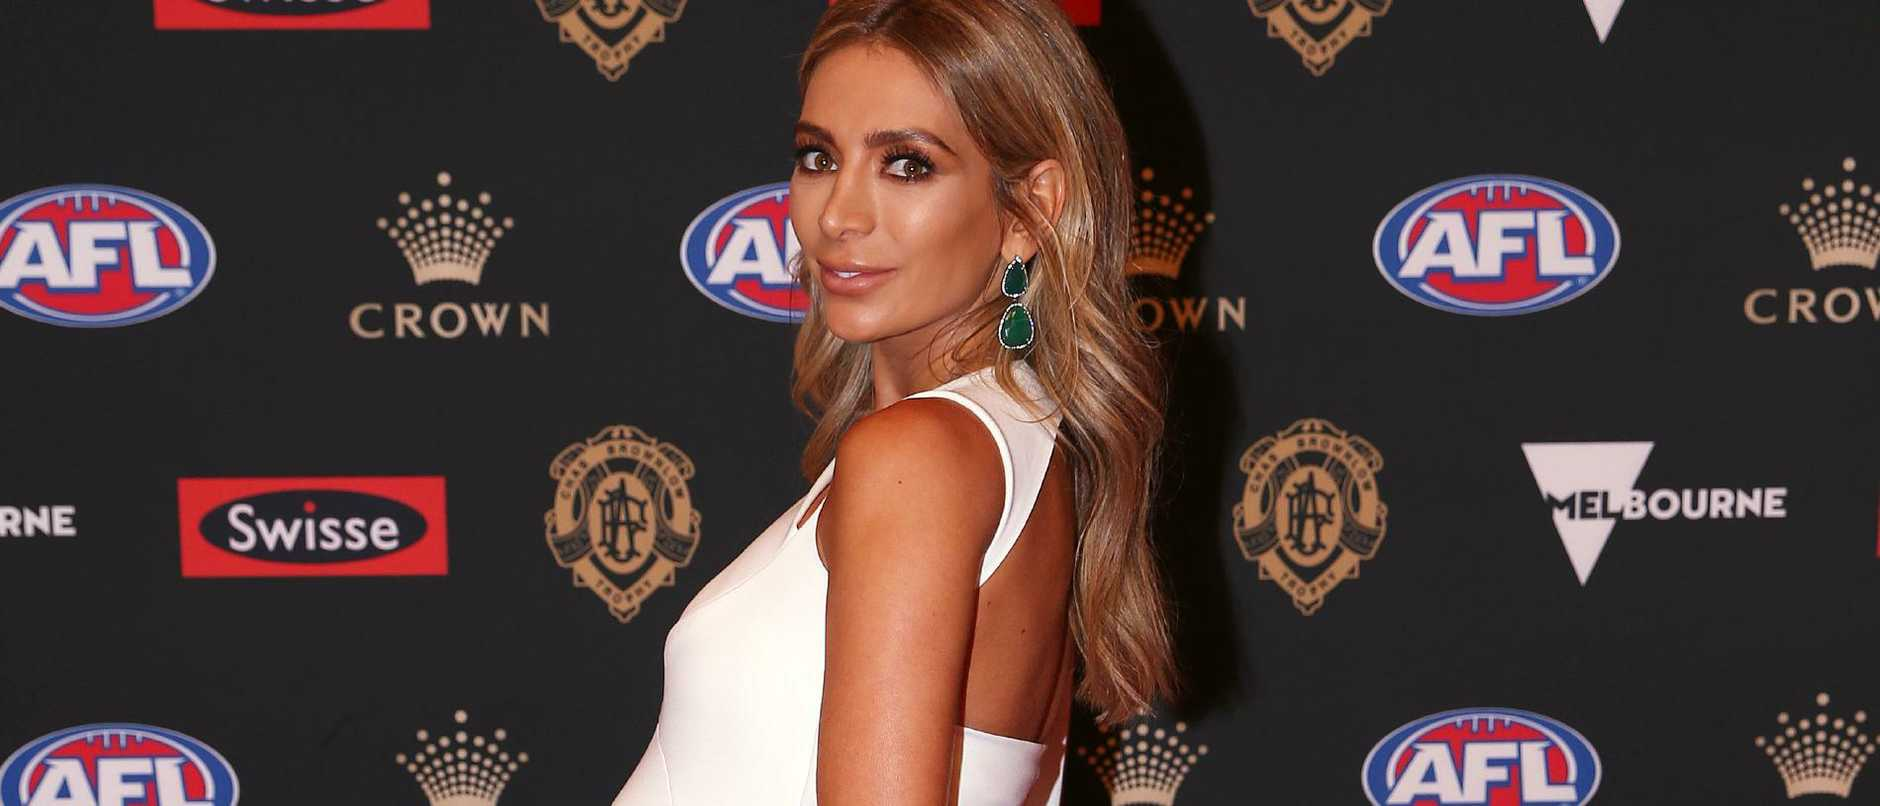 Nadia Bartel on the 2018 Brownlow red carpet. Pic: Michael Klein